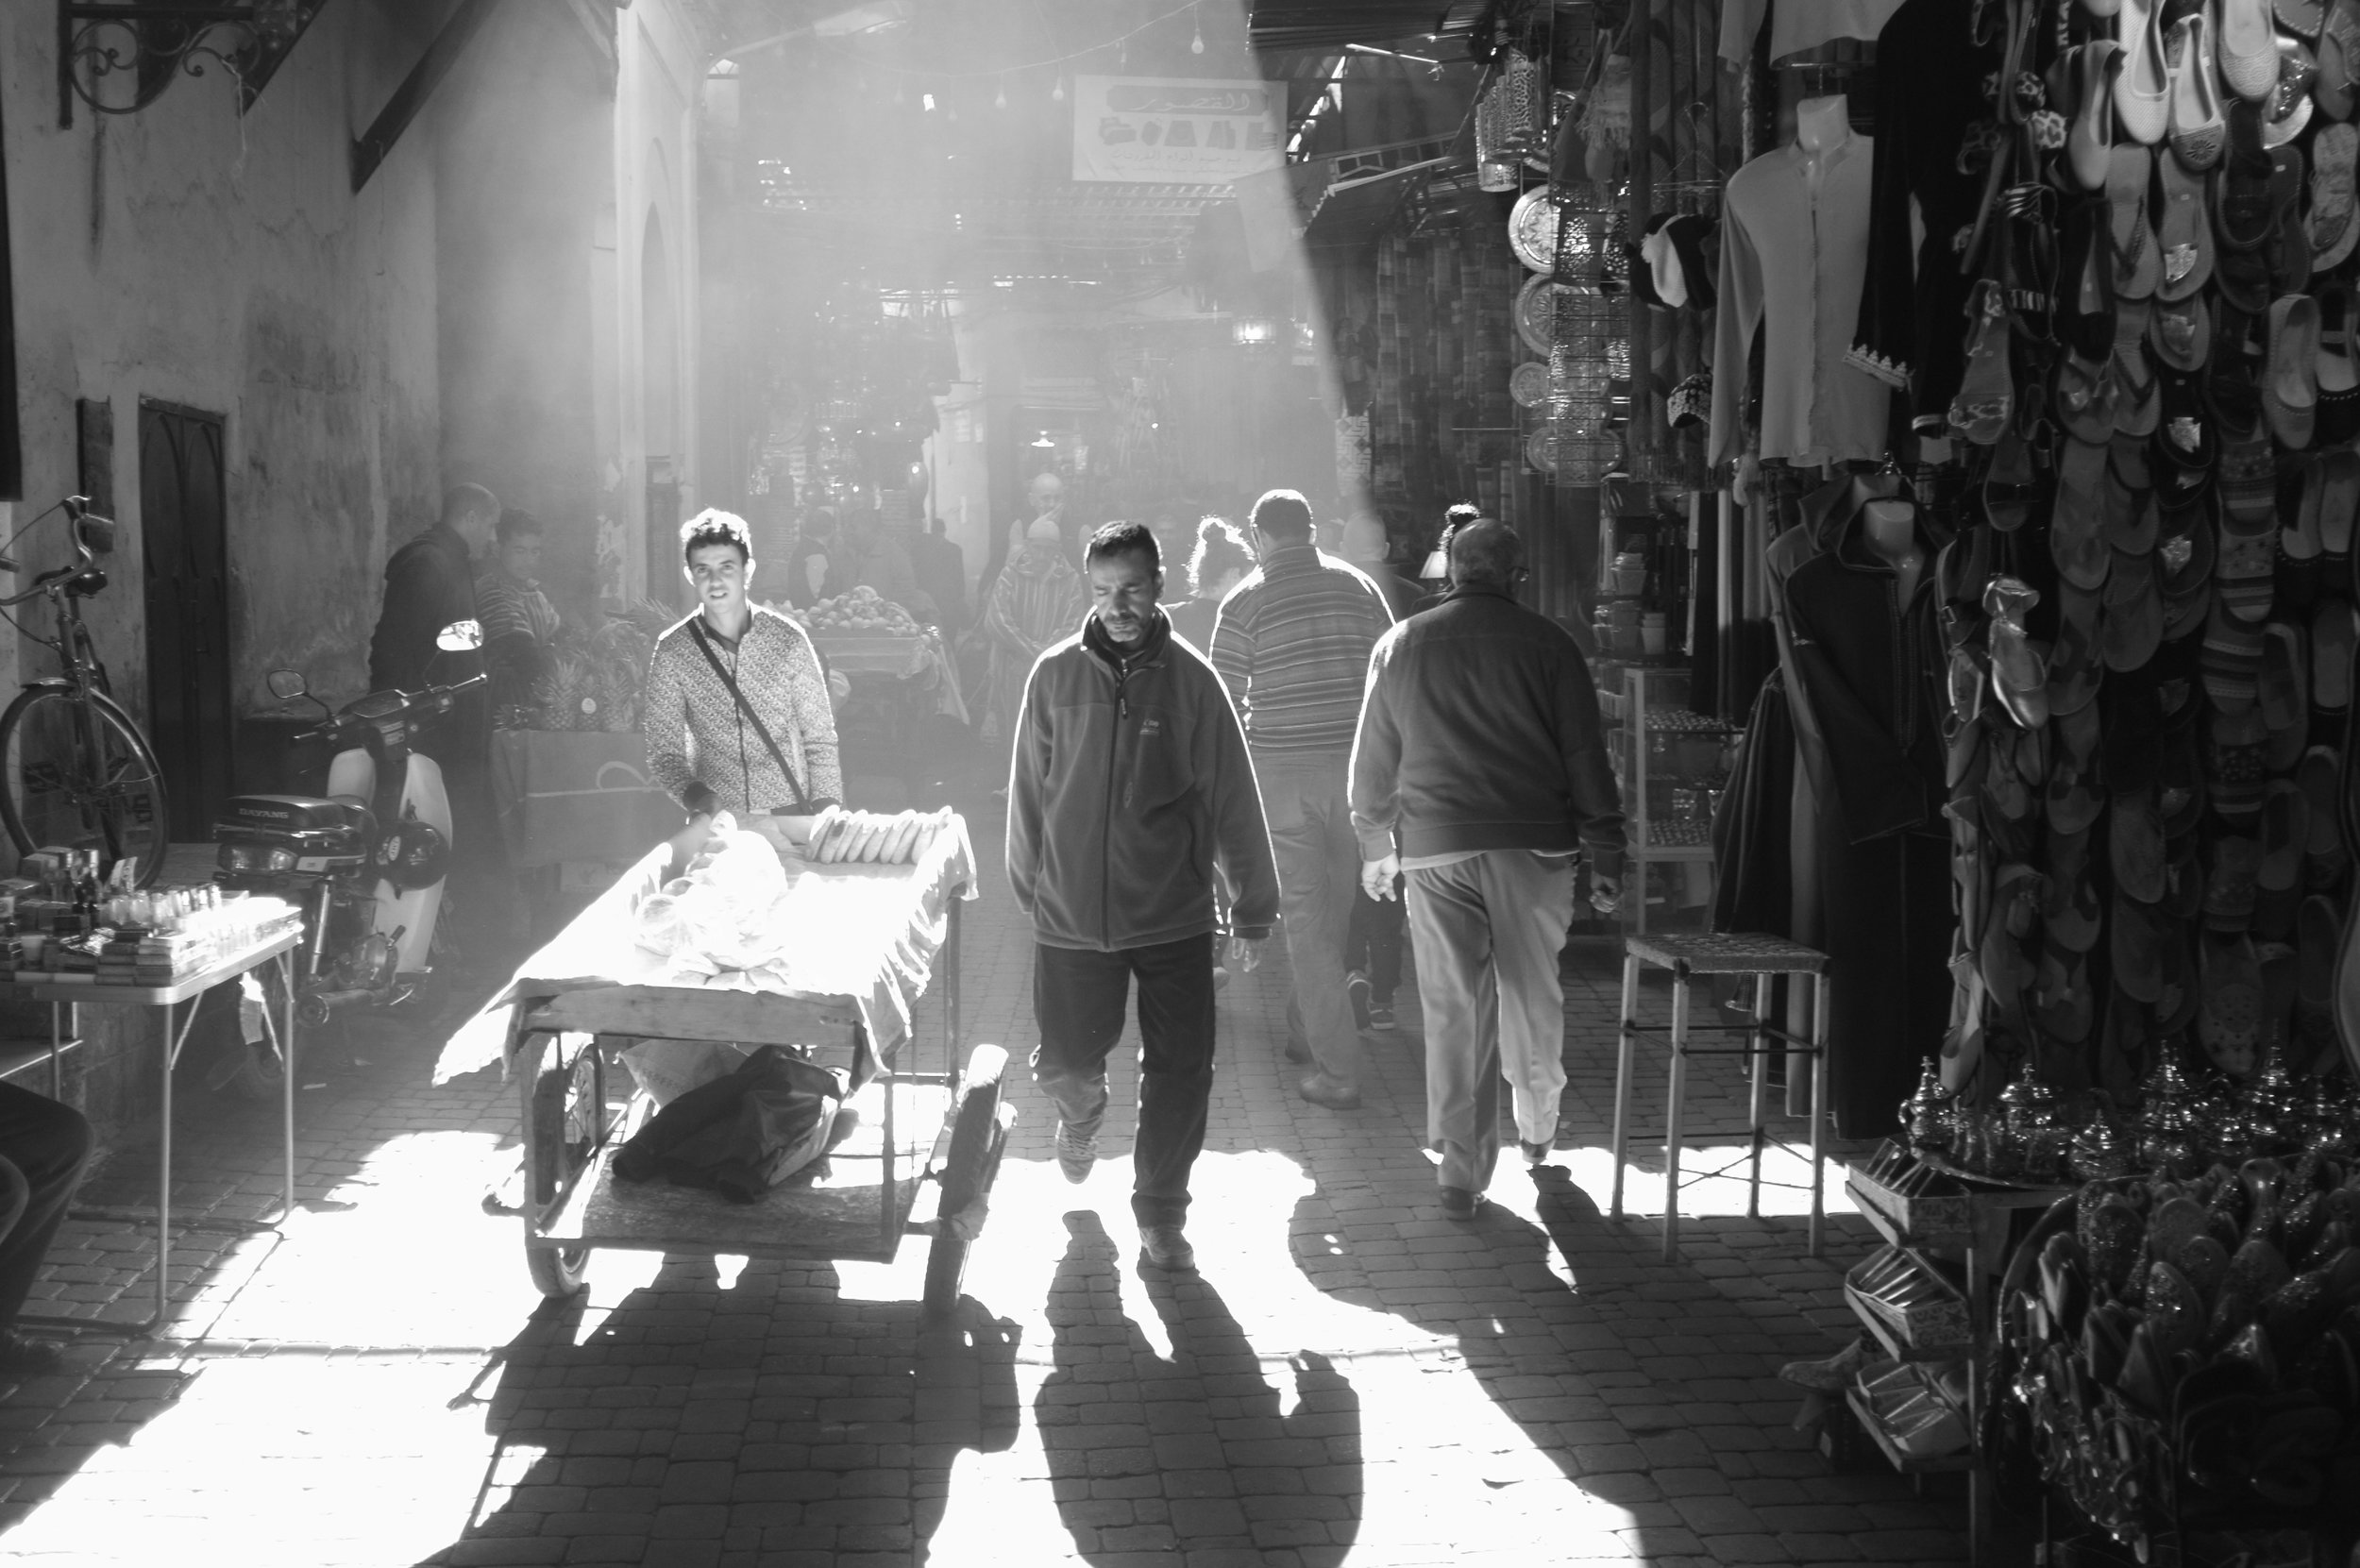 Market in Marrakesh. Morocco